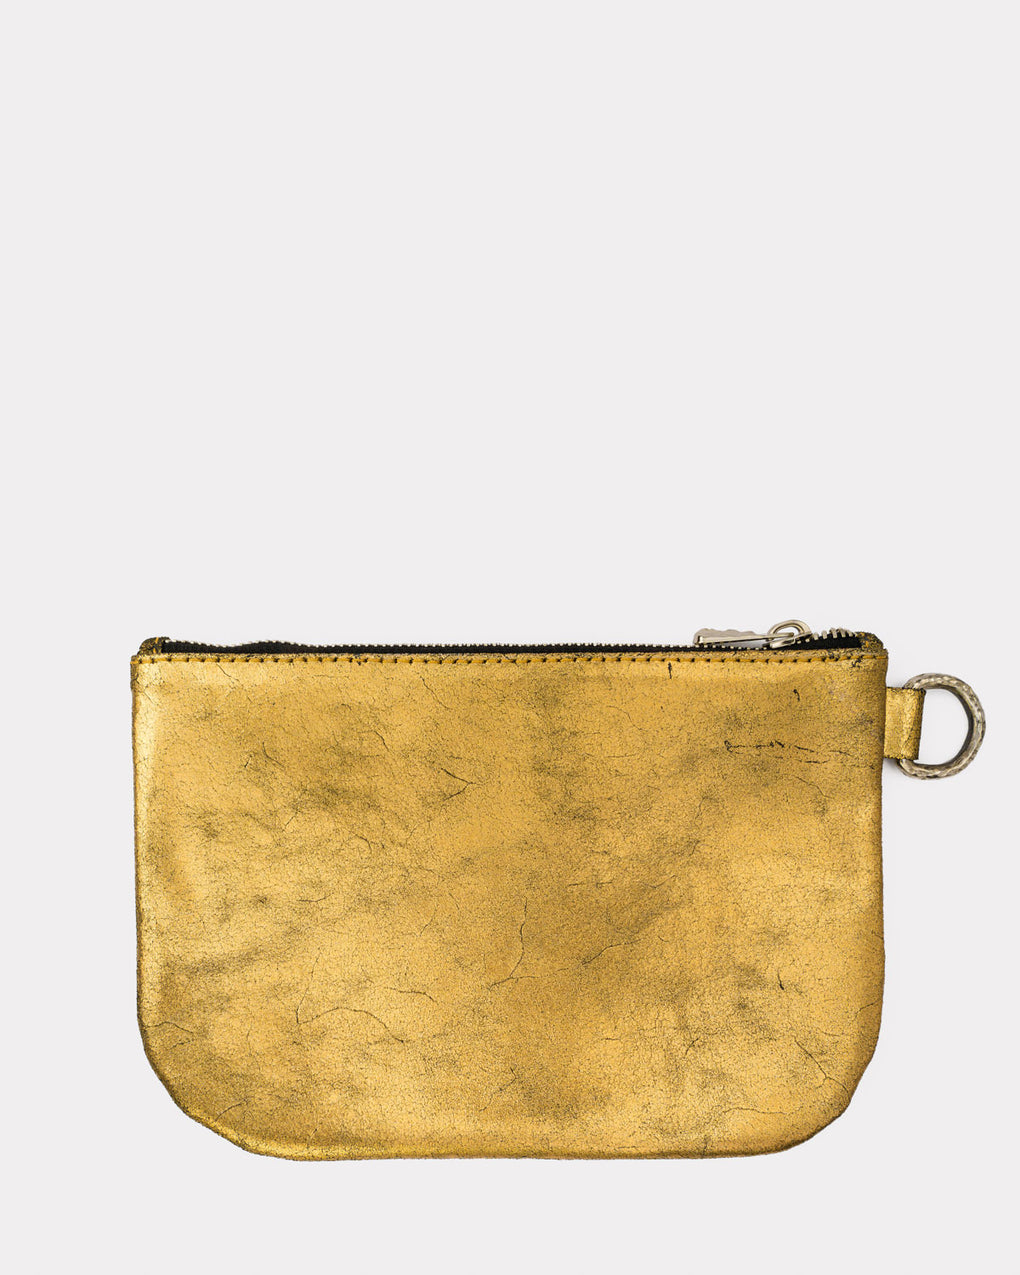 Bauhaus Pouch Medium - Foil